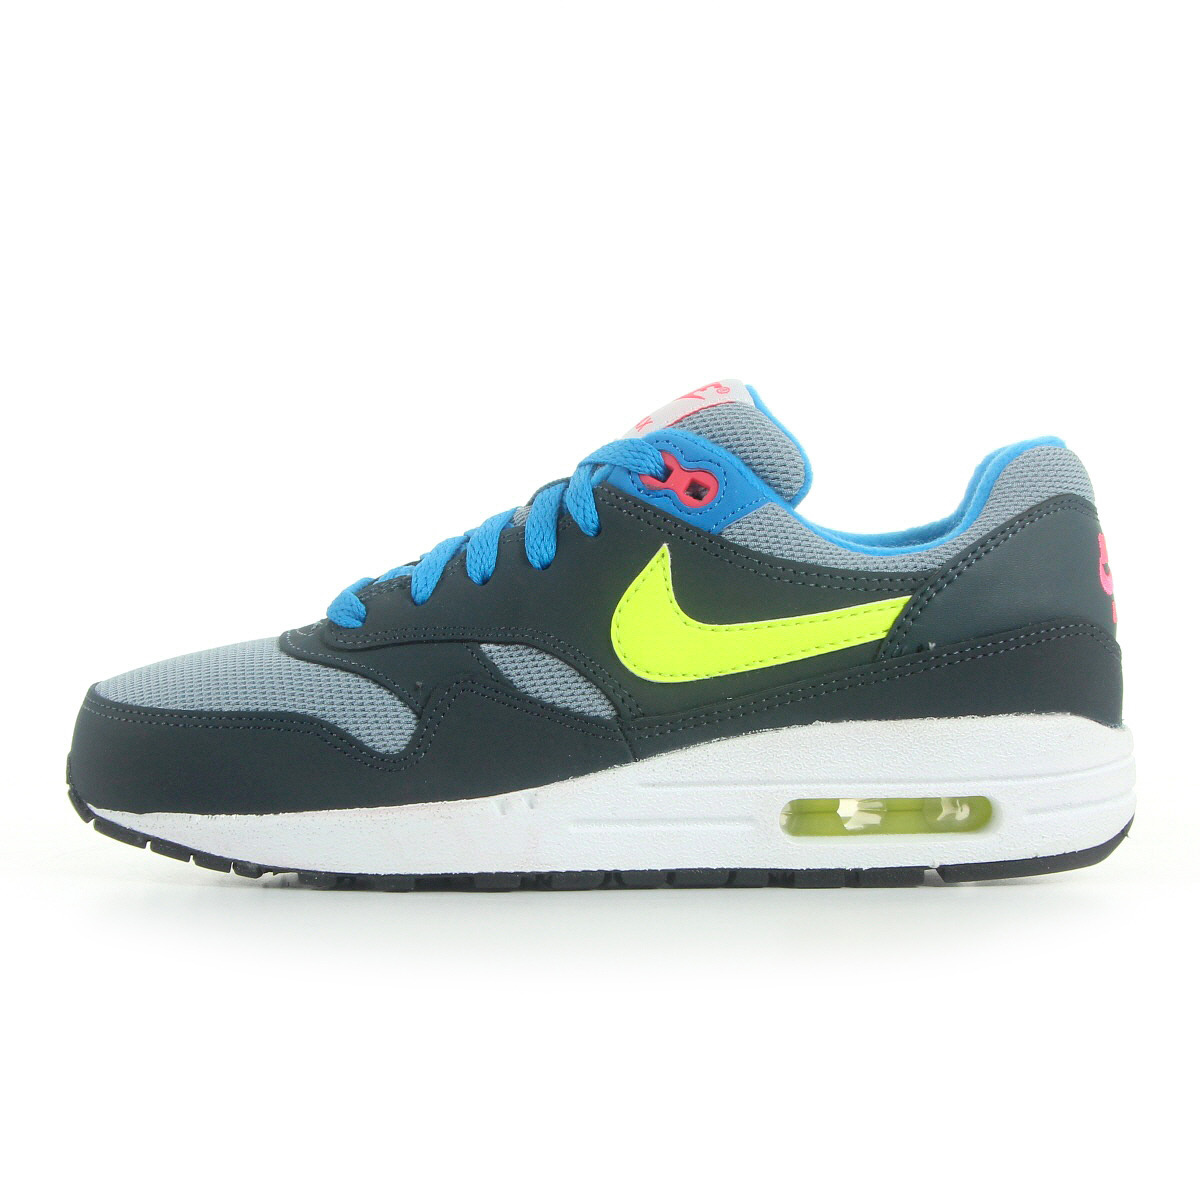 nike basket enfant nike air max 1 bleue taille 38 5 salomon parka. Black Bedroom Furniture Sets. Home Design Ideas